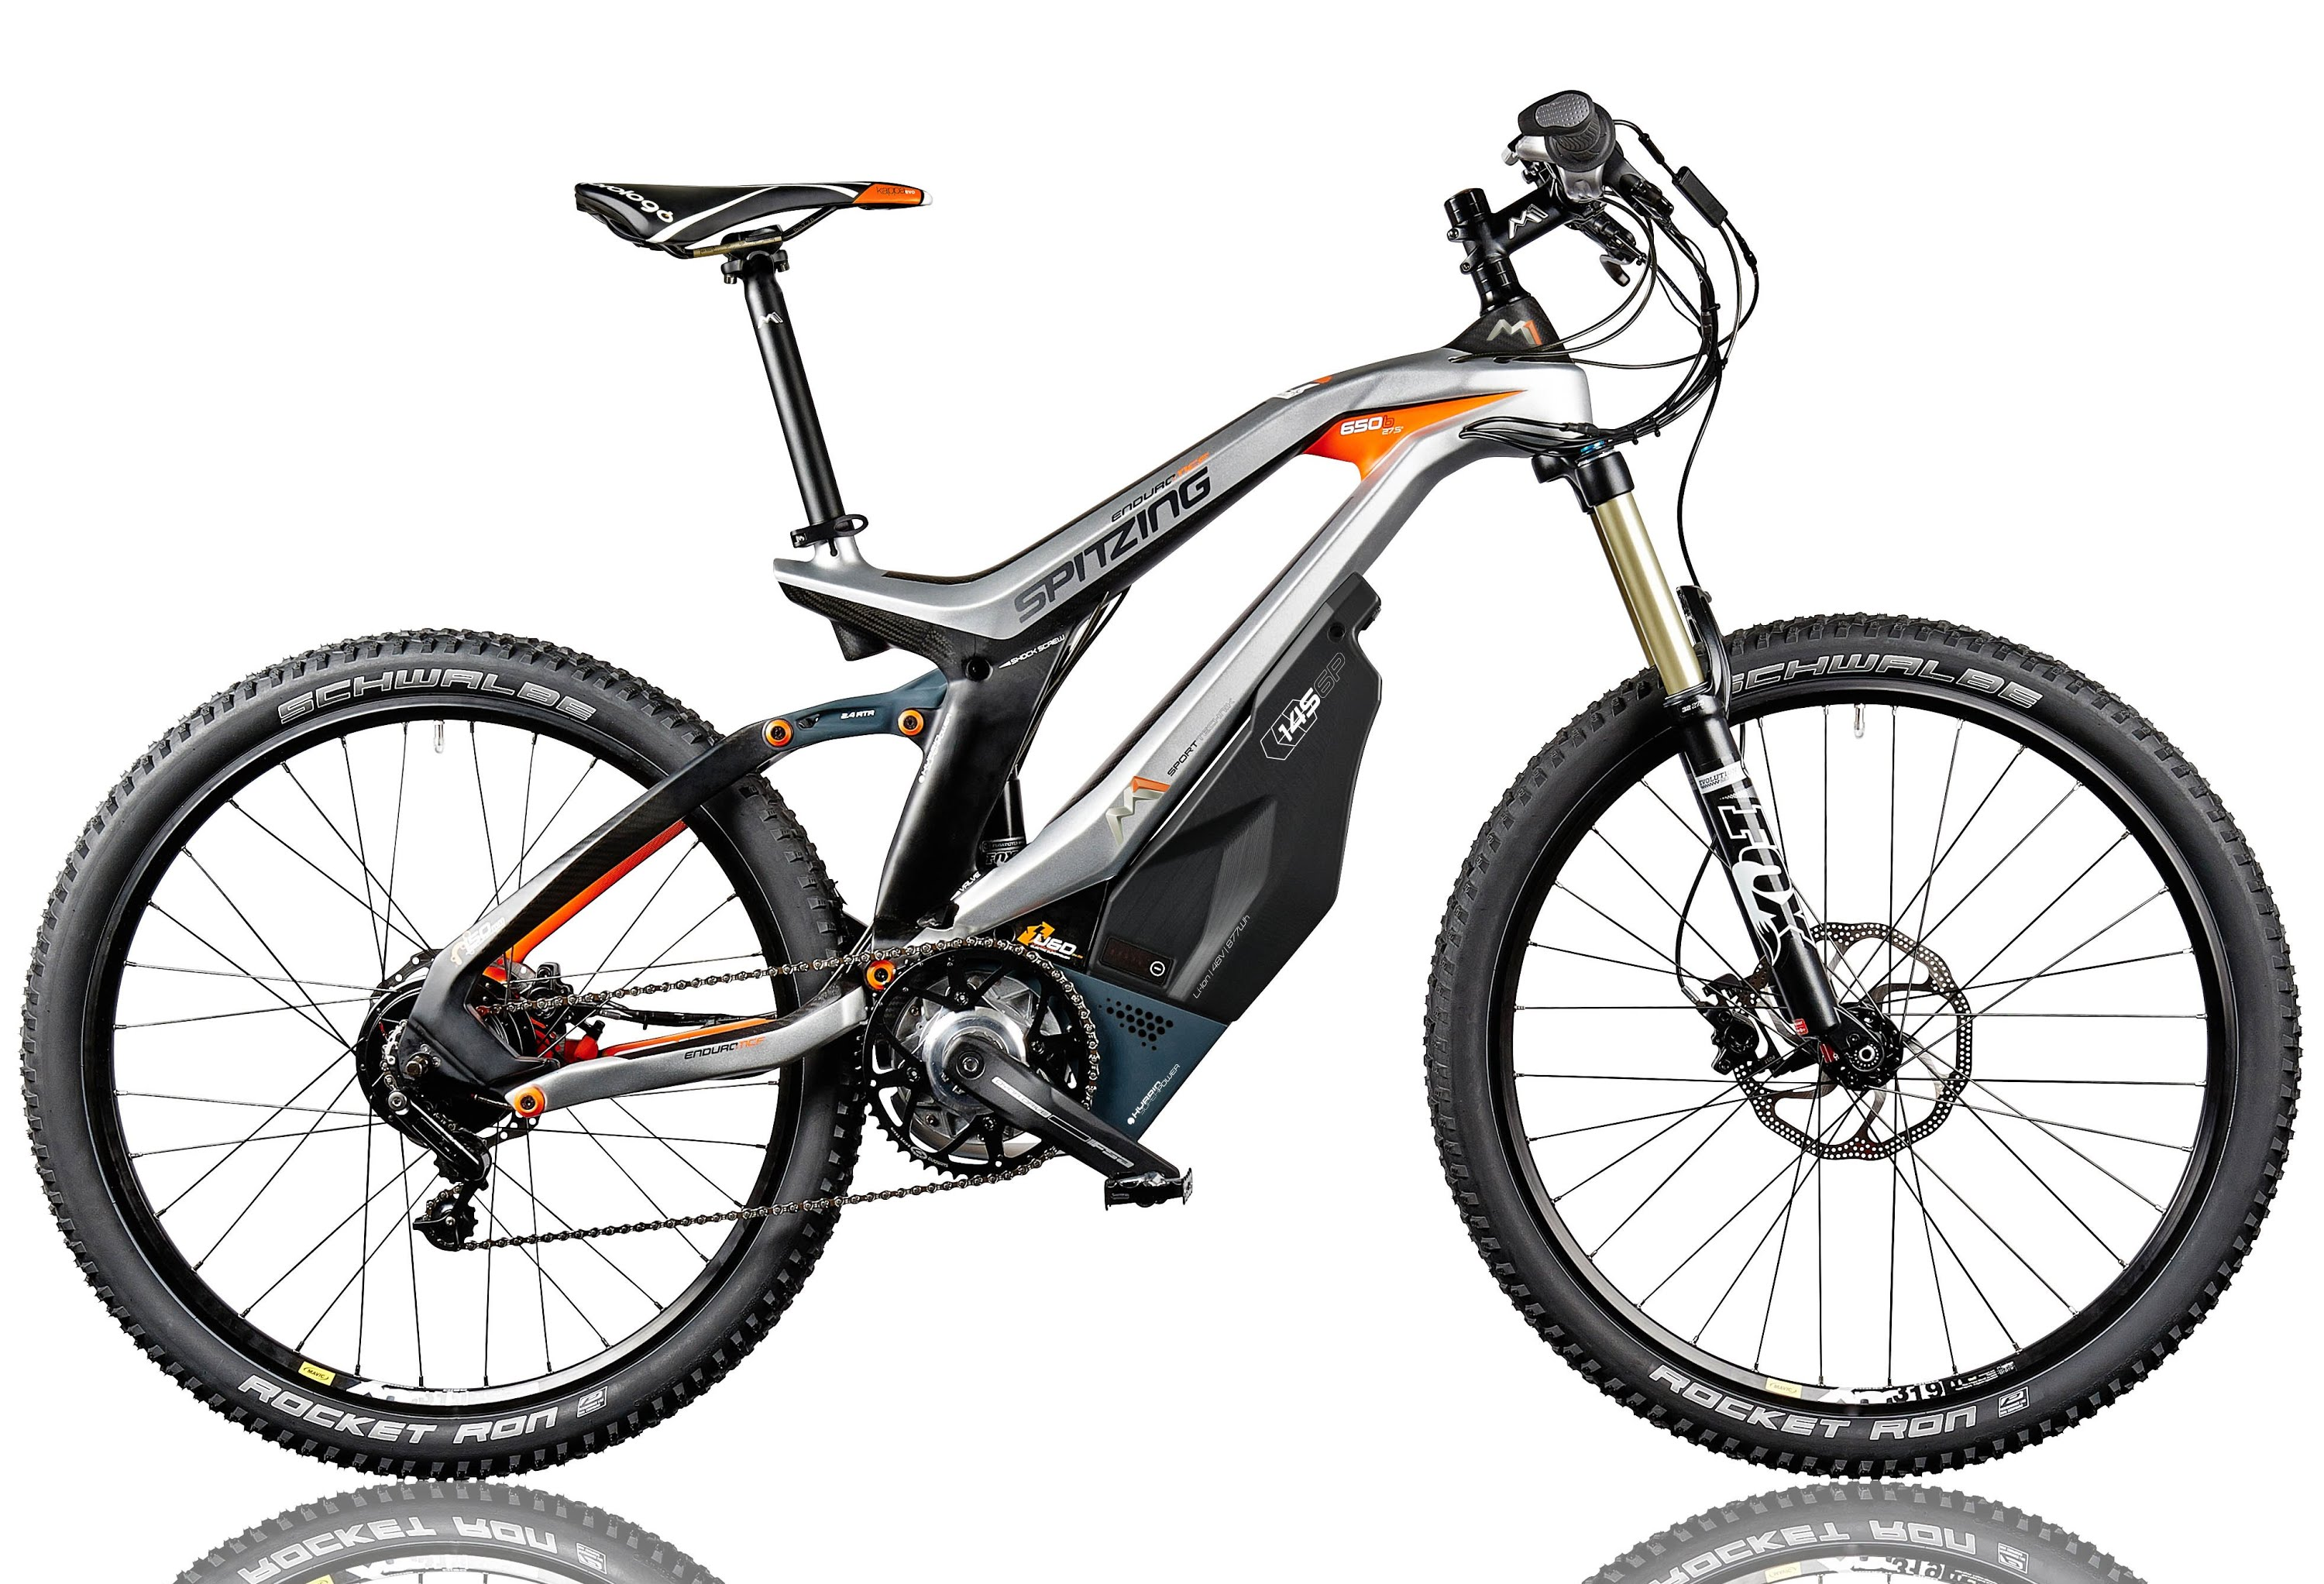 In 10 Years There Will No More Mtbs Without Electric Motors Ev